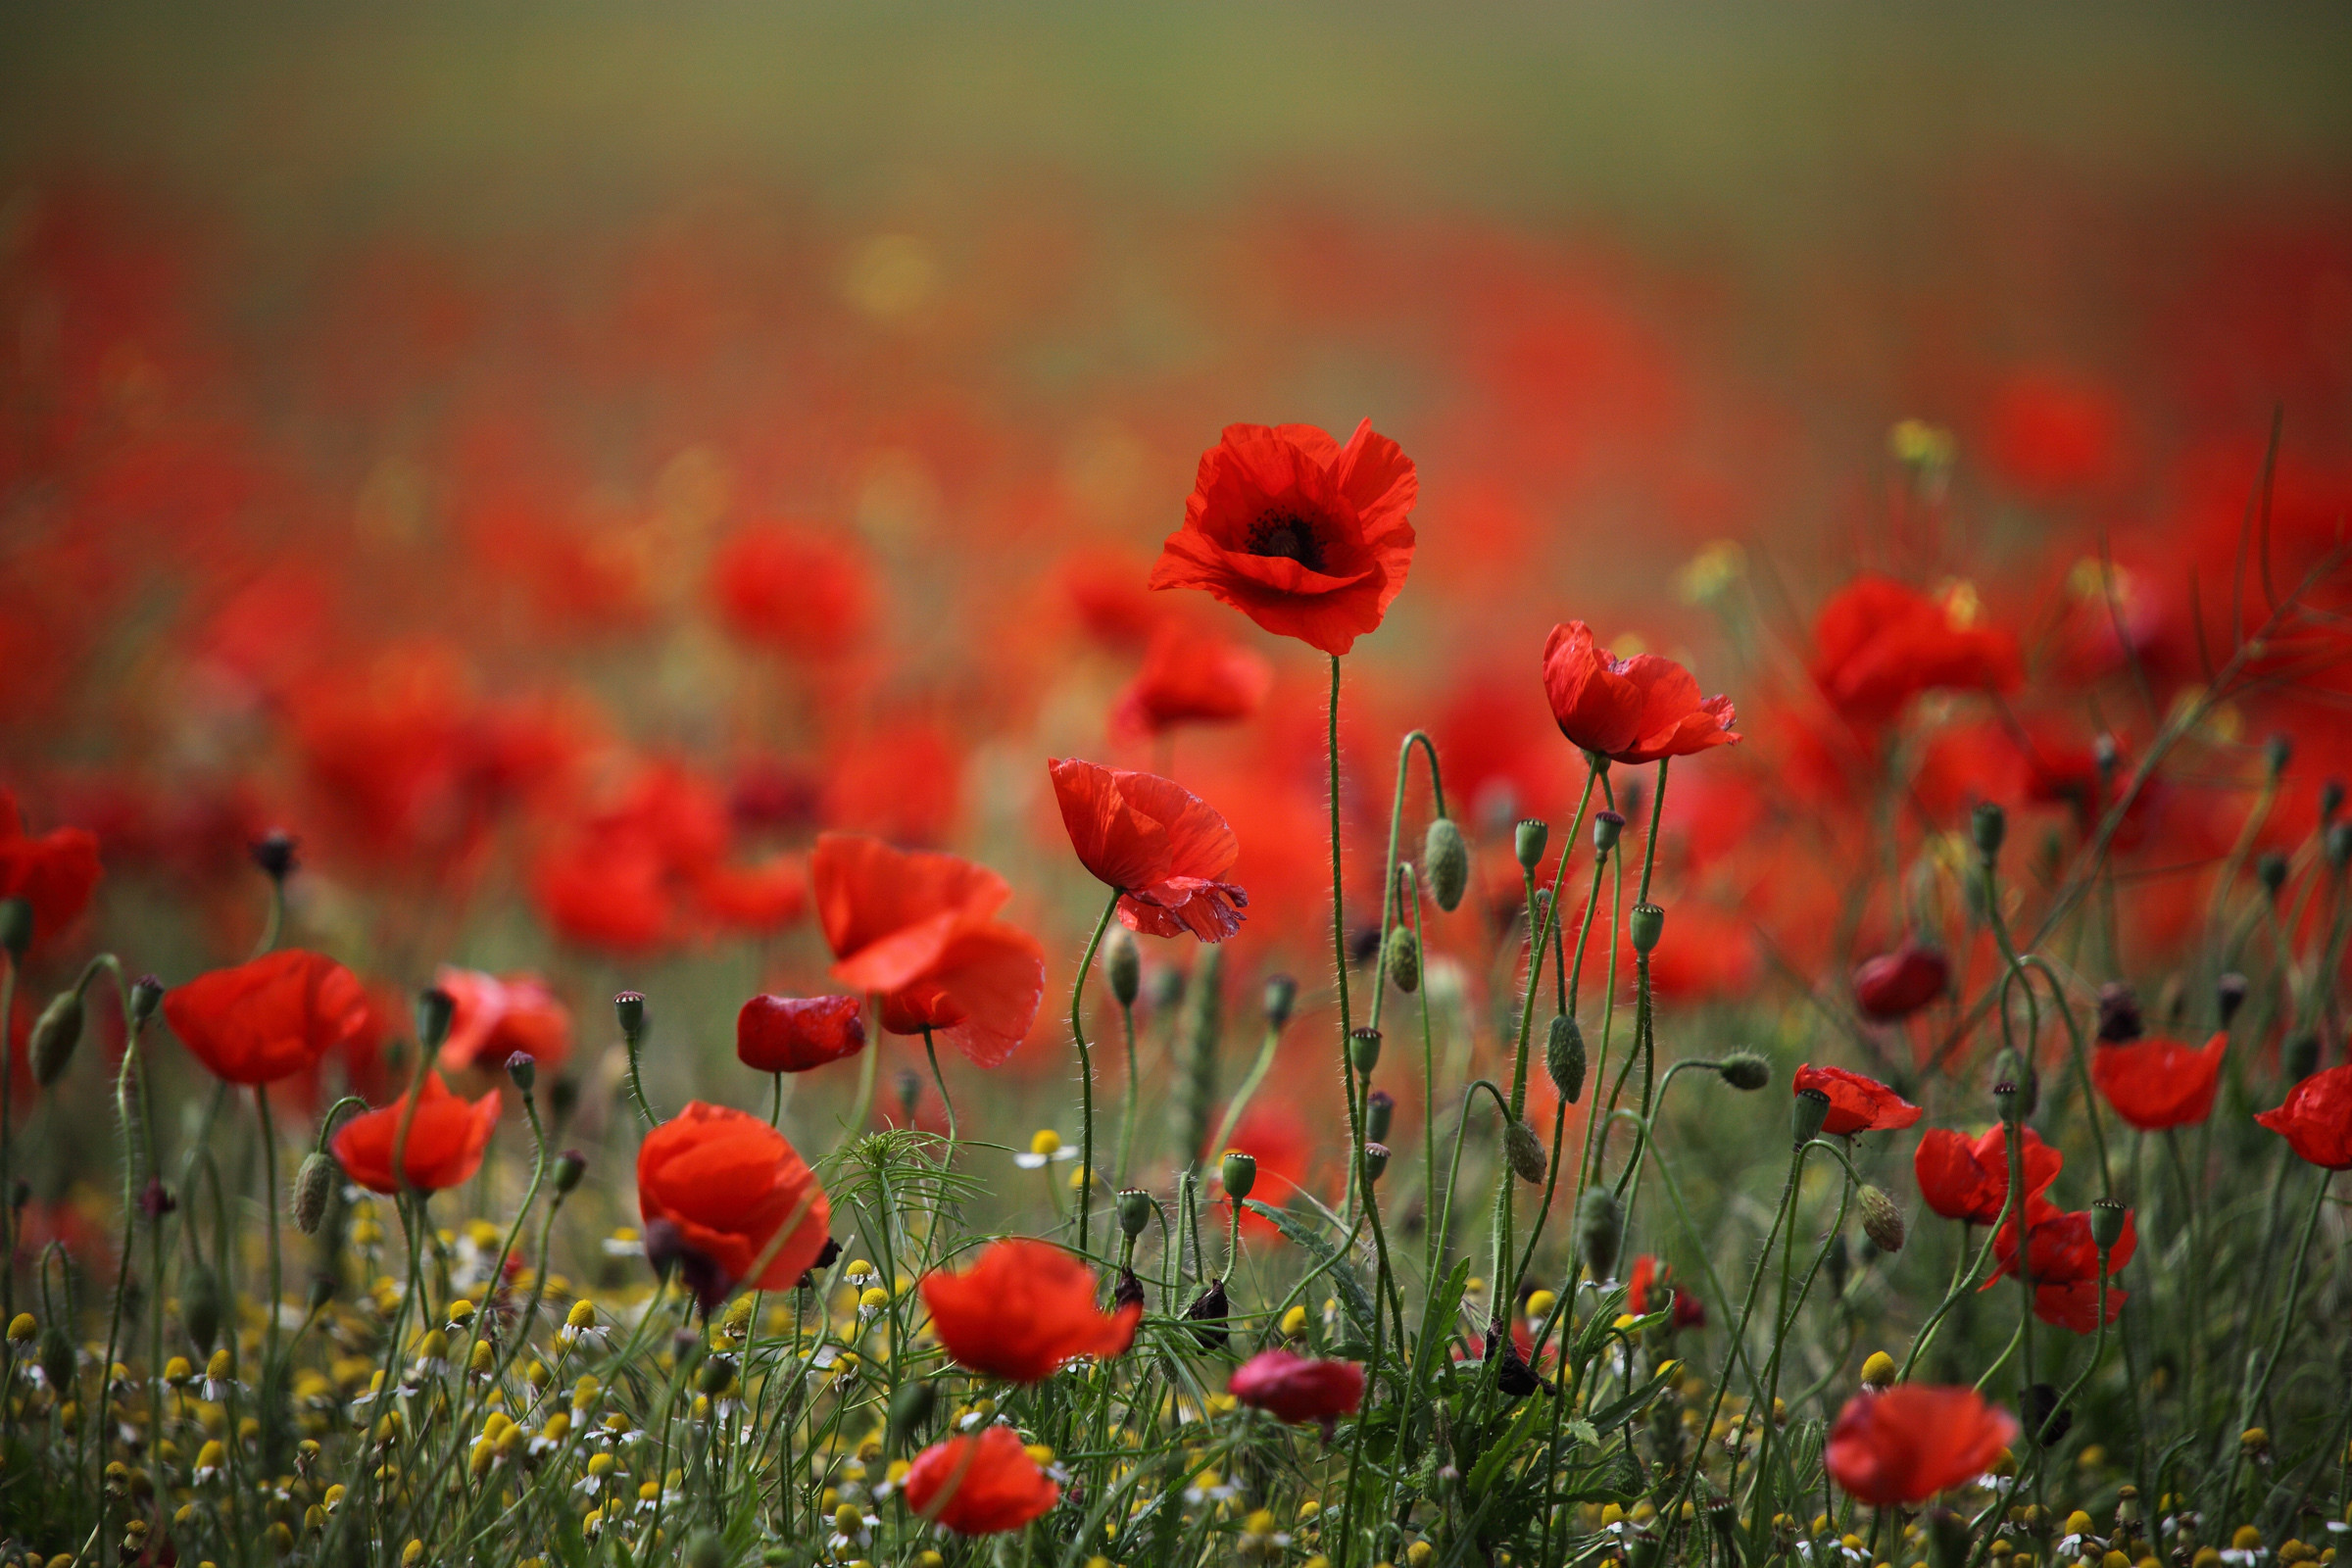 Field of poppies wallpaper 50 images - Poppy wallpaper ...